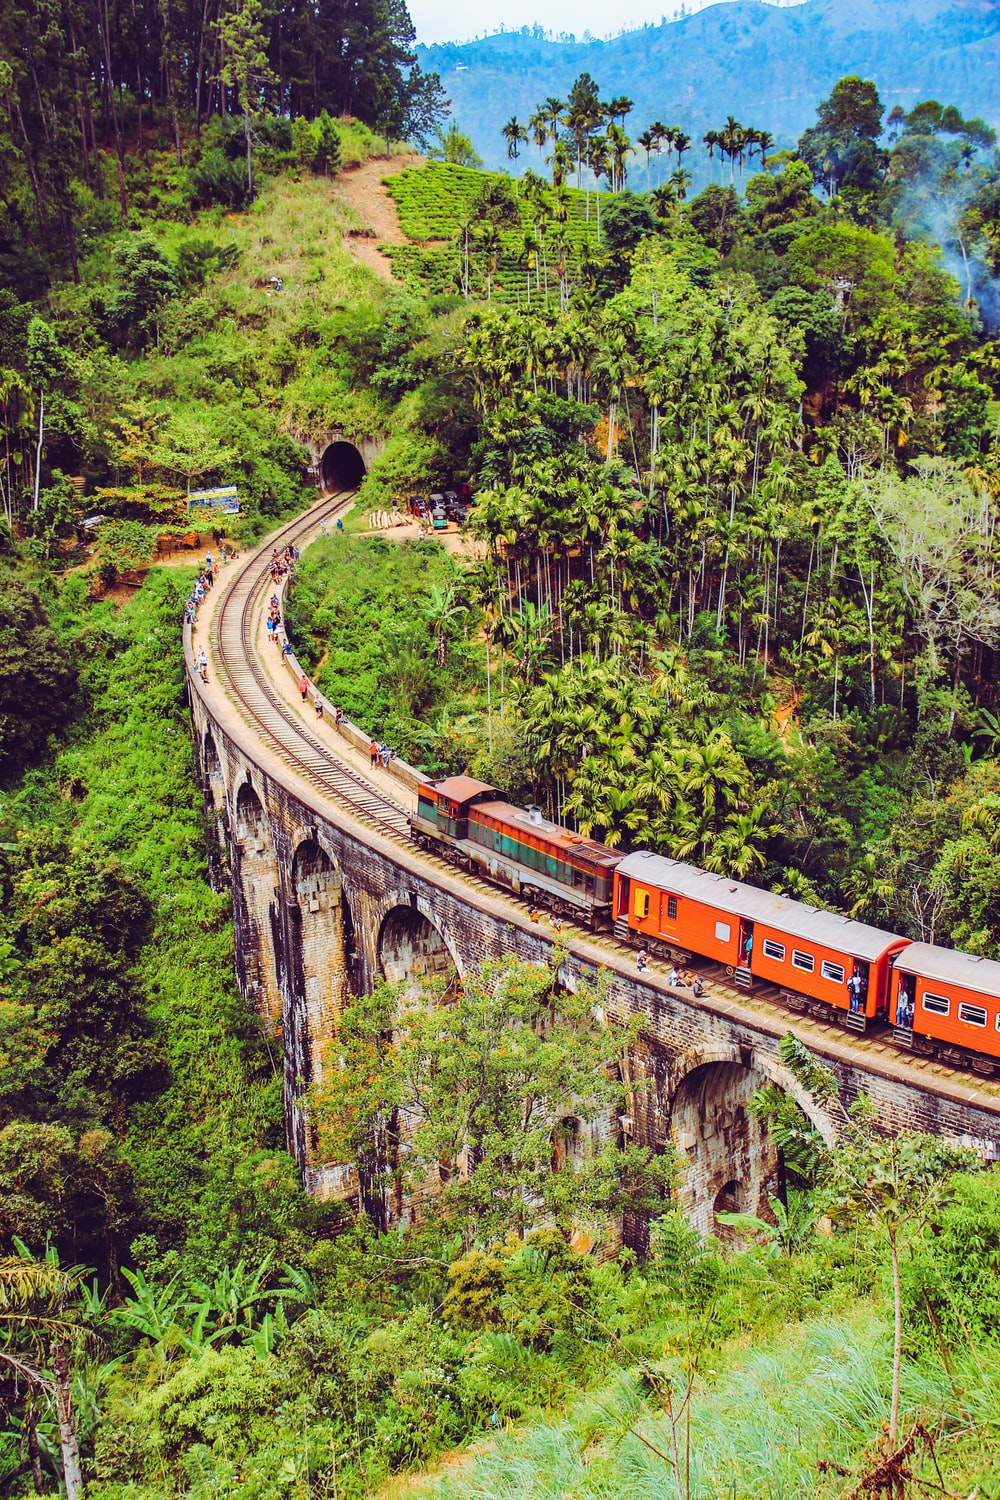 Red And White Train On Rail Track Surrounded By Green Trees During Daytime Photo Free Nine Arch Bridge Image On Unsplash Nature railway rails stone arch trees